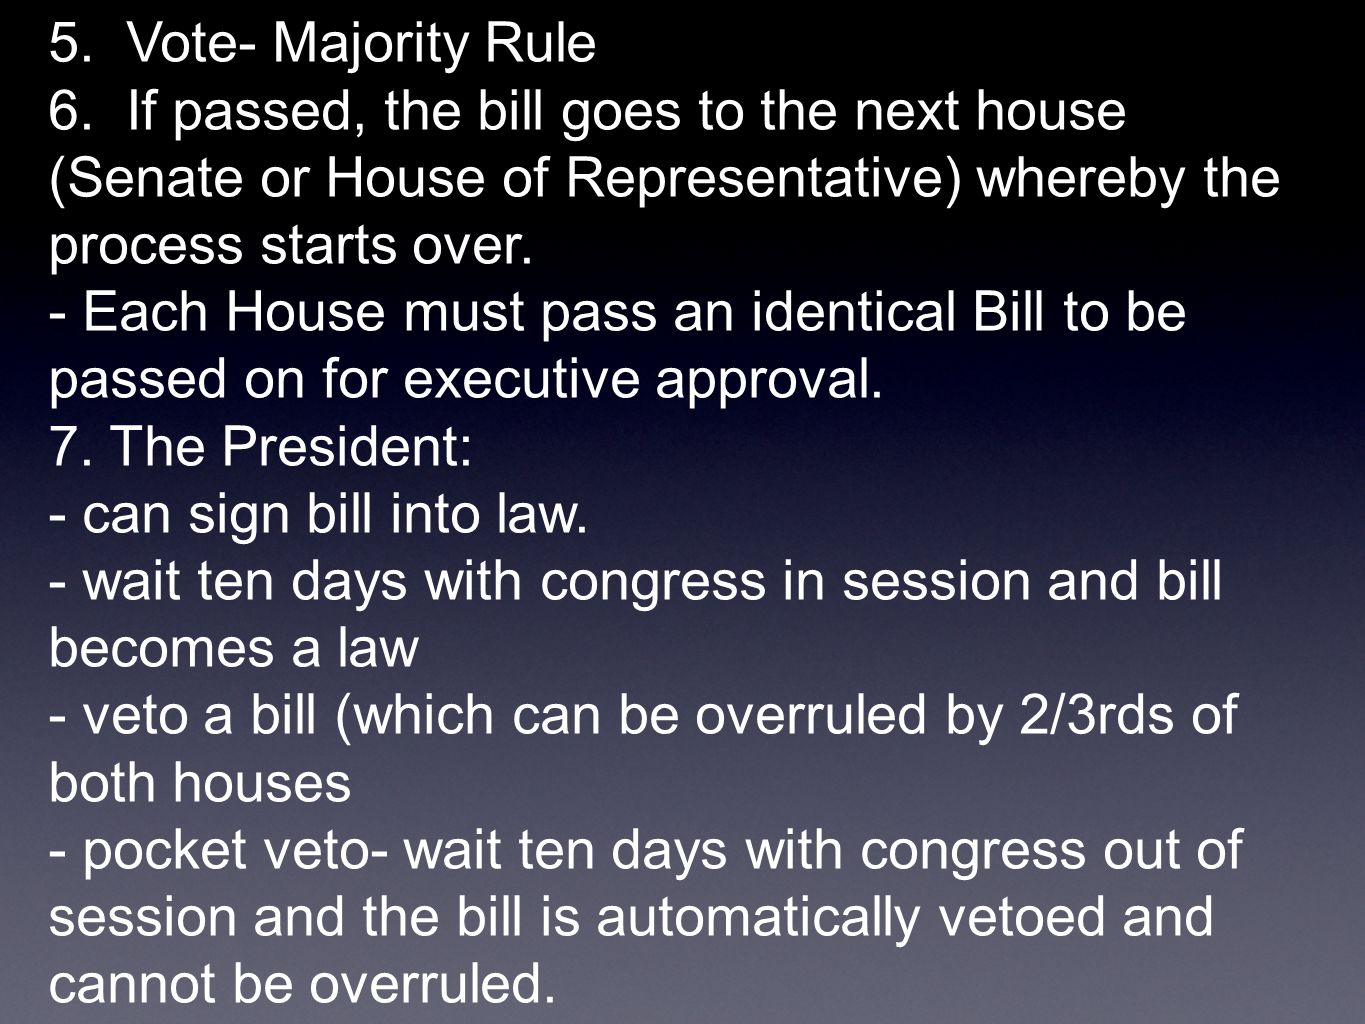 5. Vote- Majority Rule 6. If passed, the bill goes to the next house (Senate or House of Representative) whereby the process starts over. - Each House